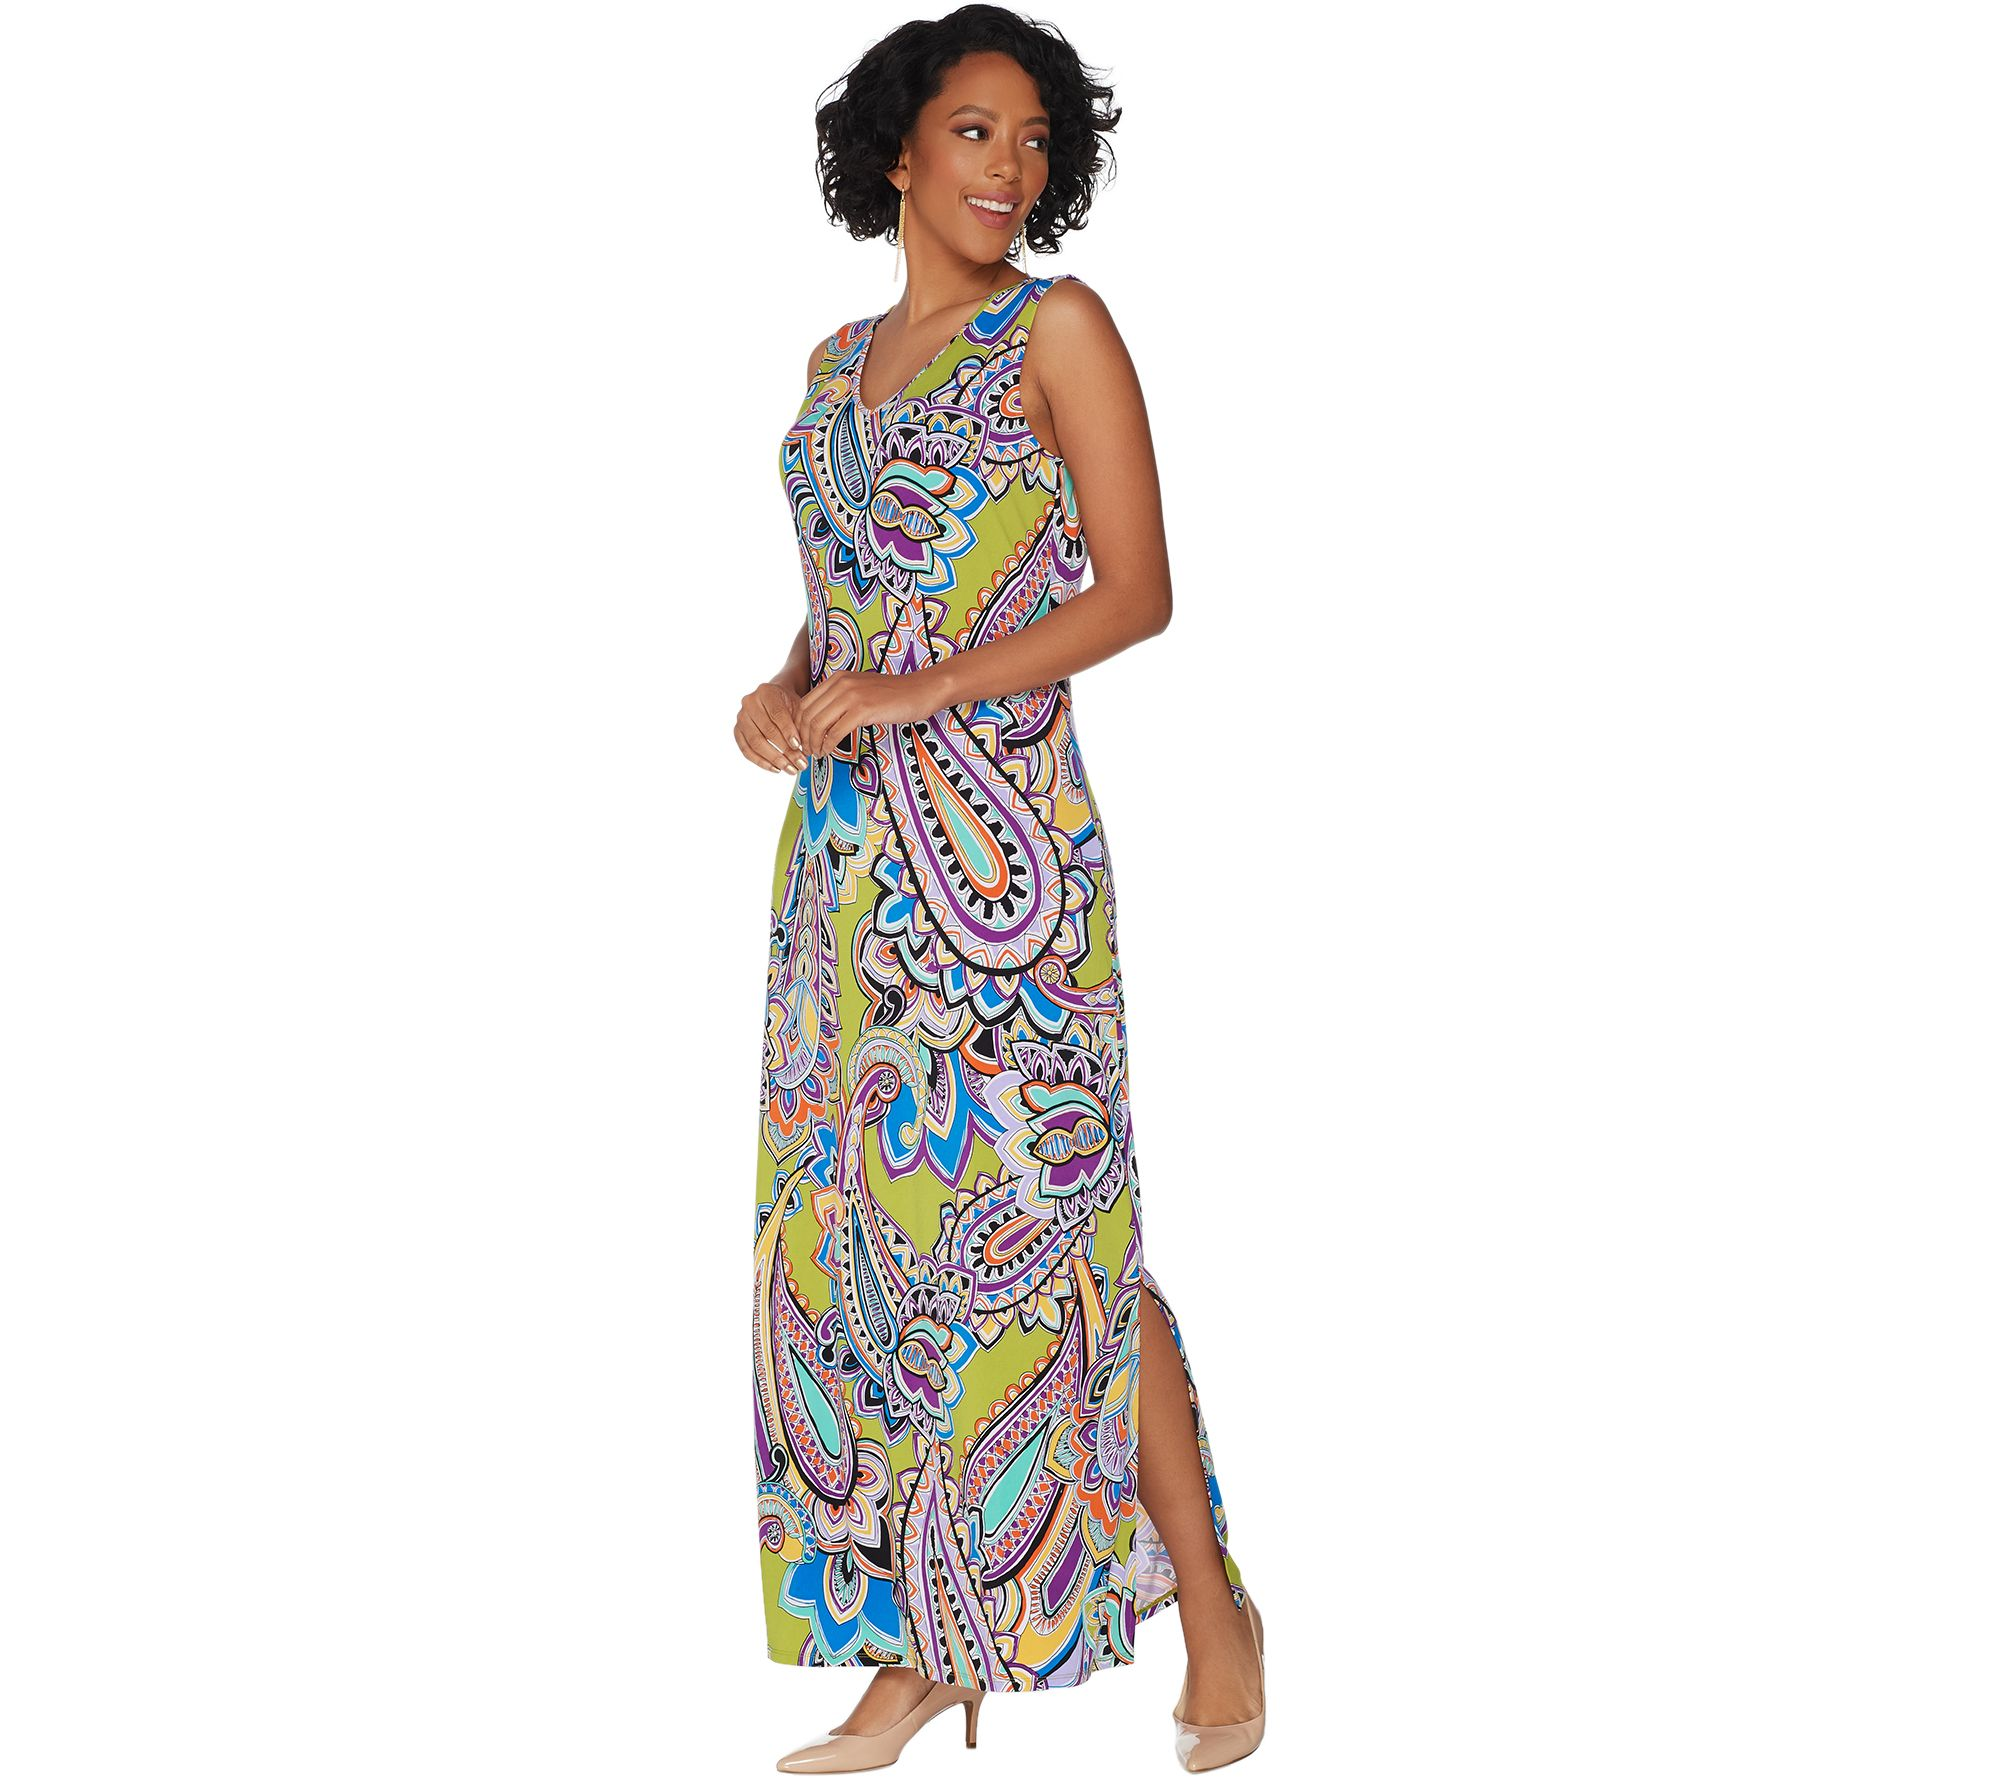 b4993d3c9 Susan Graver Printed Liquid Knit Sleeveless Maxi Dress - Page 1 — QVC.com